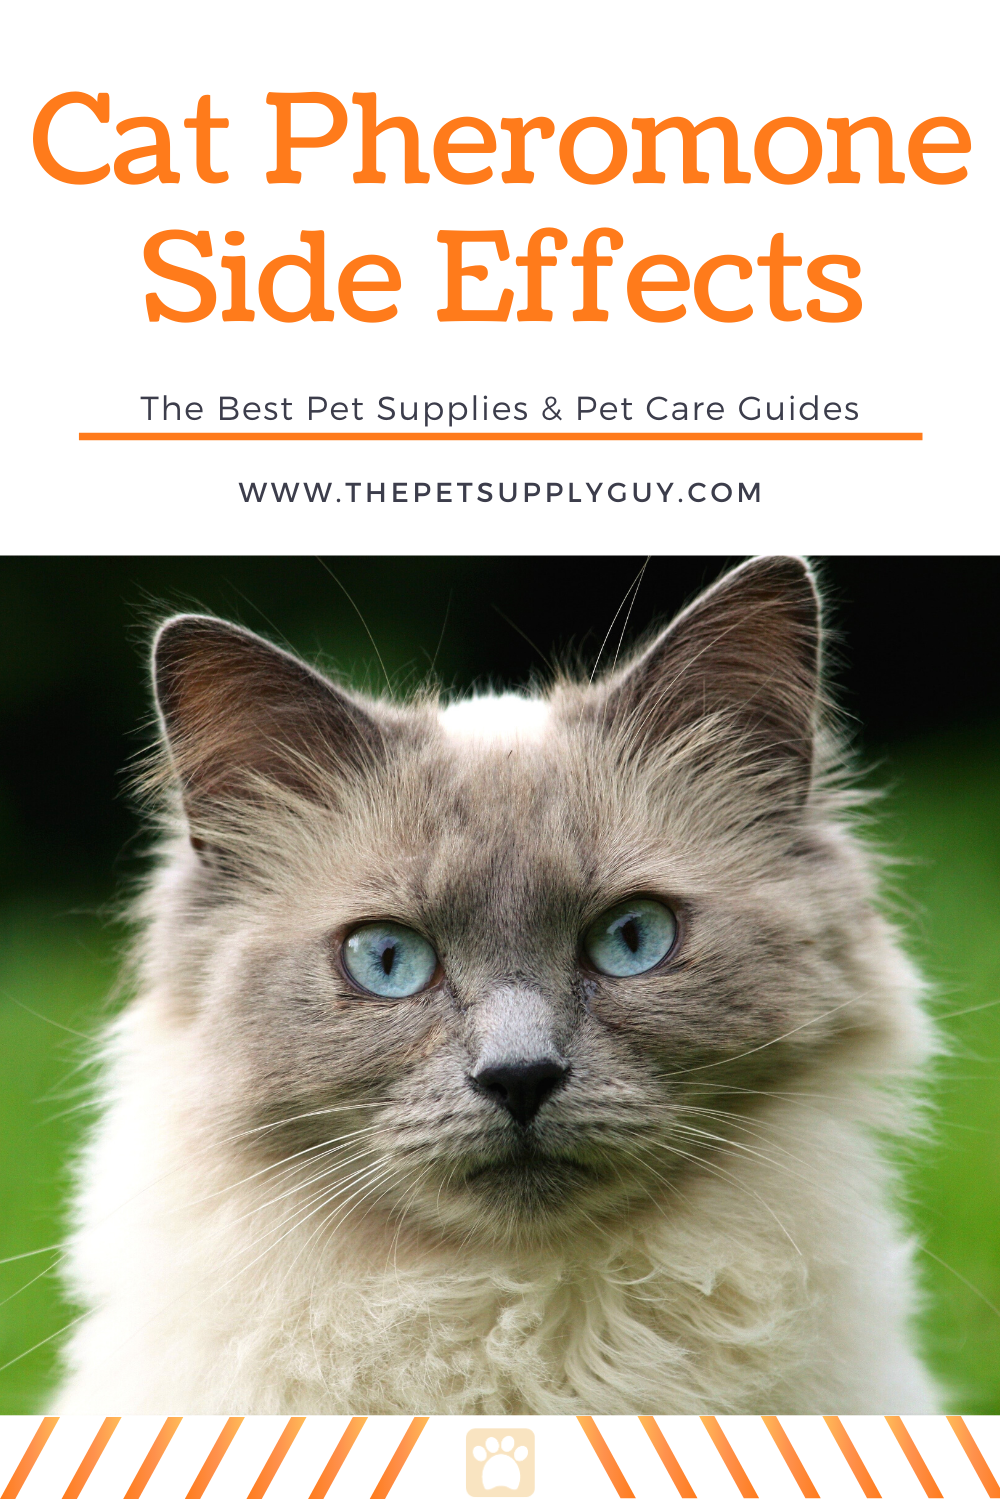 Pheromones For Cats Side Effects The Pet Supply Guy In 2020 Cat Parenting Crazy Cats Cat Care